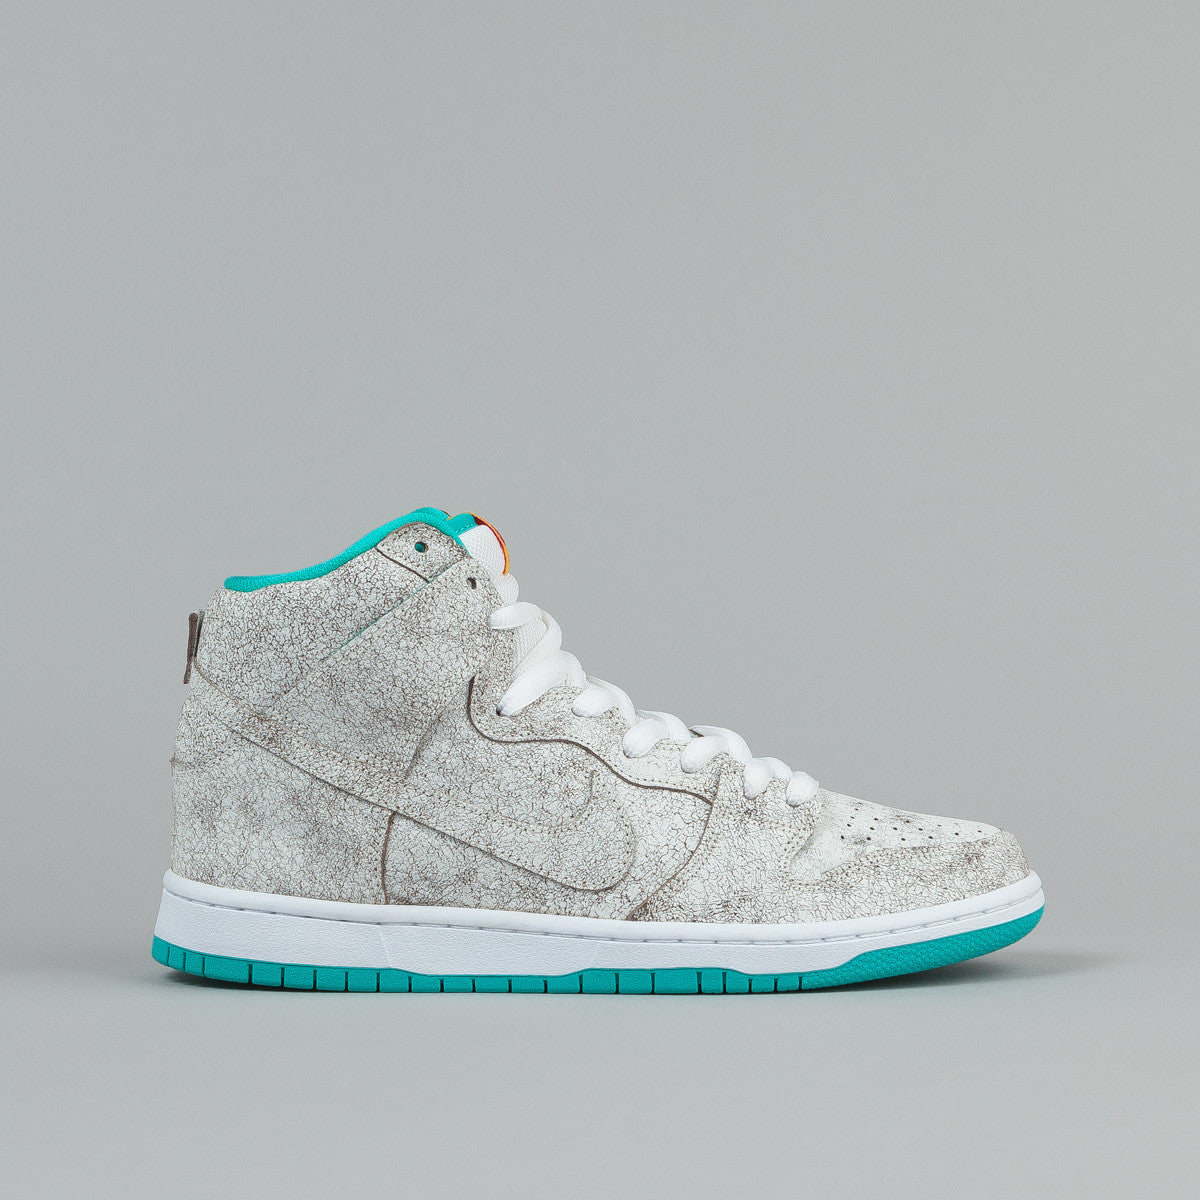 Nike SB Dunk High Premium Shoes 'Flamingo'